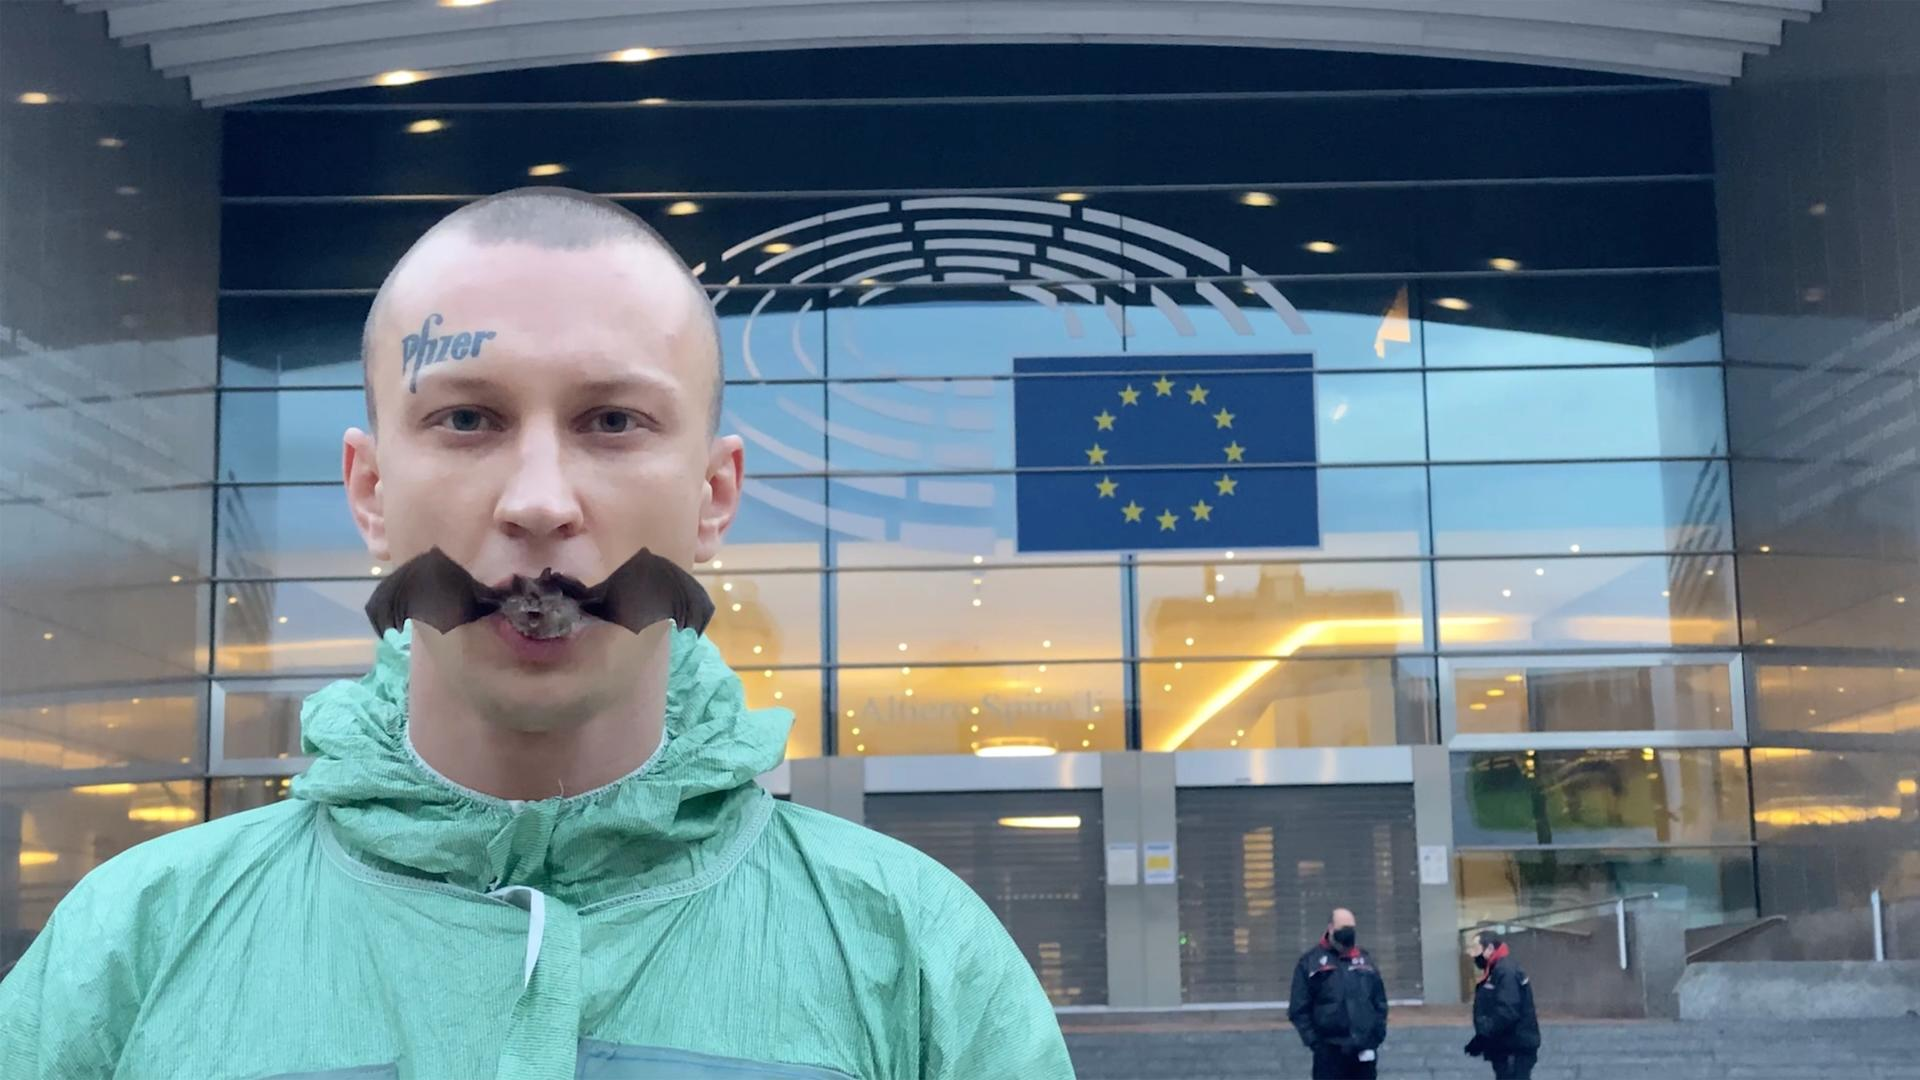 Petr Davydtchenko consumed a live bat outside the European Parliament building in Brussels last week © Petr Davydtchenko